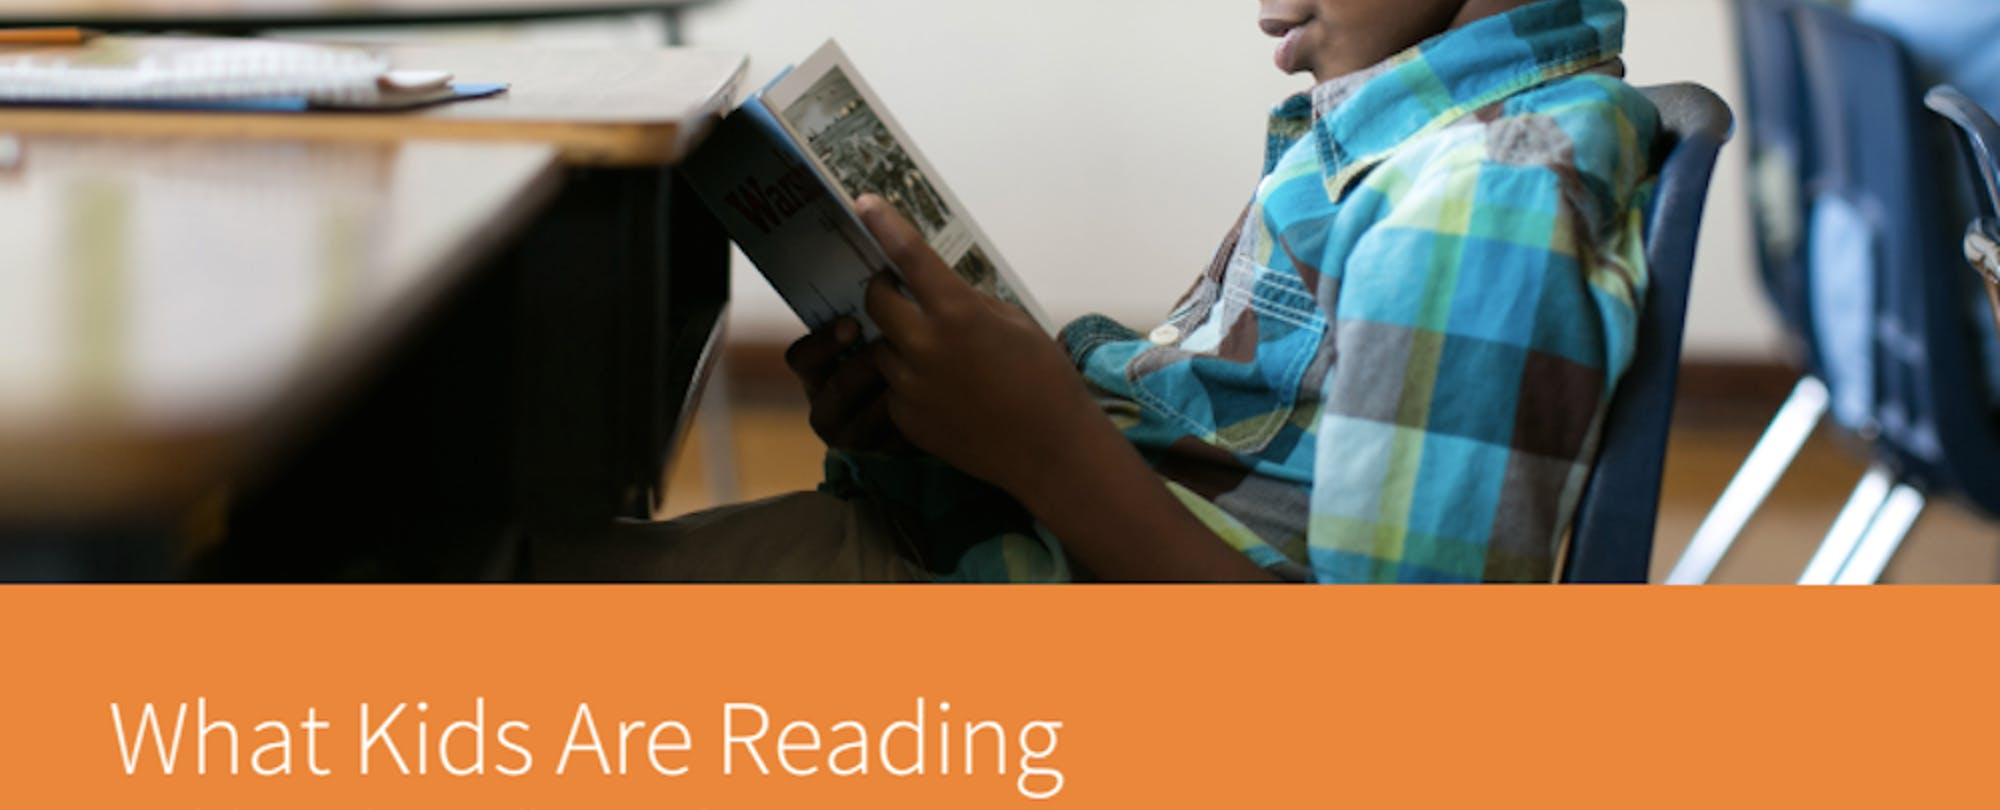 Nationwide Renaissance Learning Reading Report Finds Students Still Falling Short